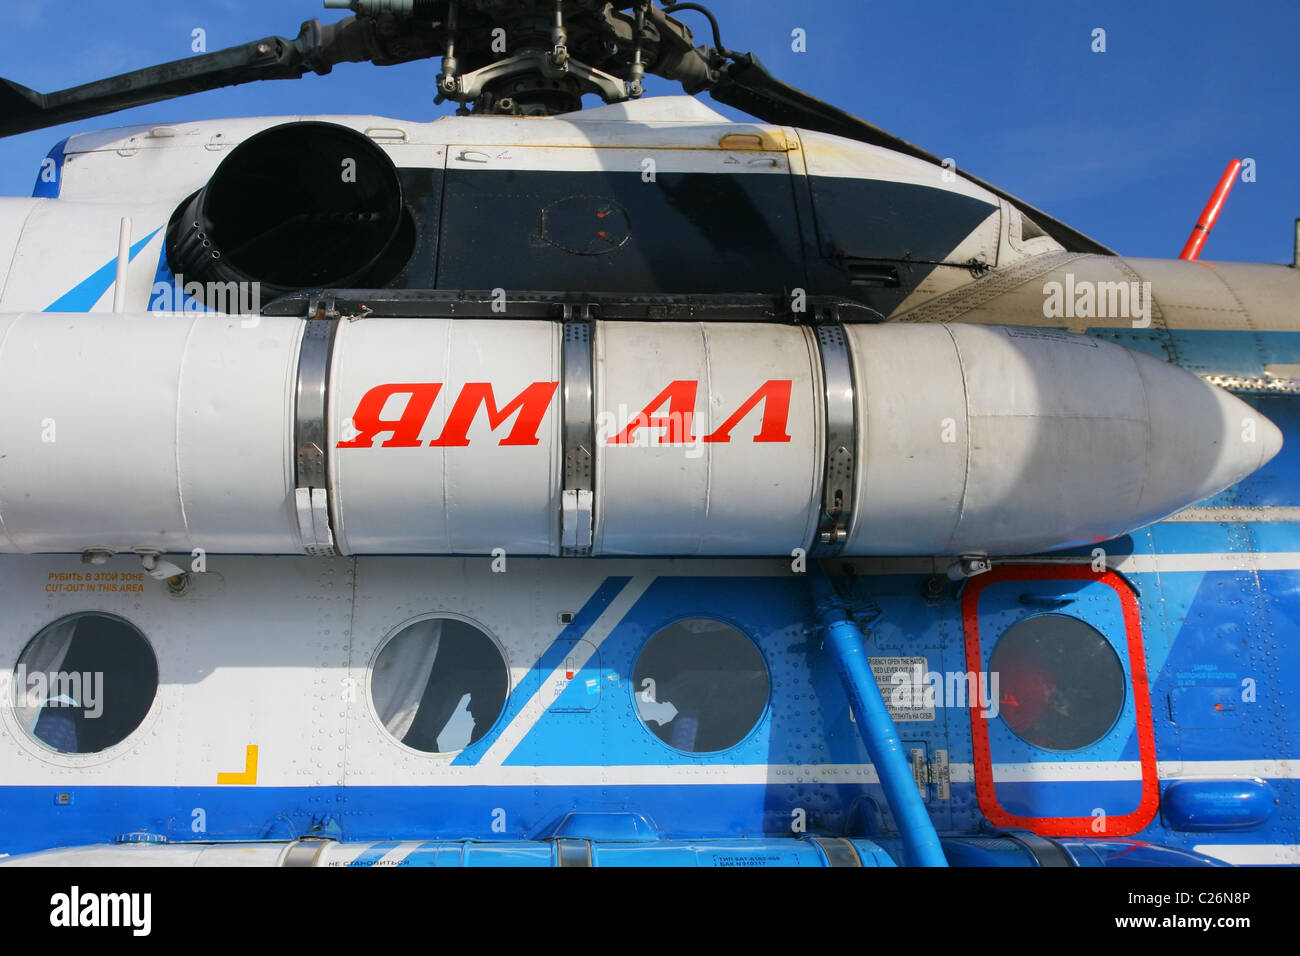 inscription in Russian 'Yamal' on the additional fuel tank of  the helicopter (Mi-8). Yamal peninsula, Russia - Stock Image